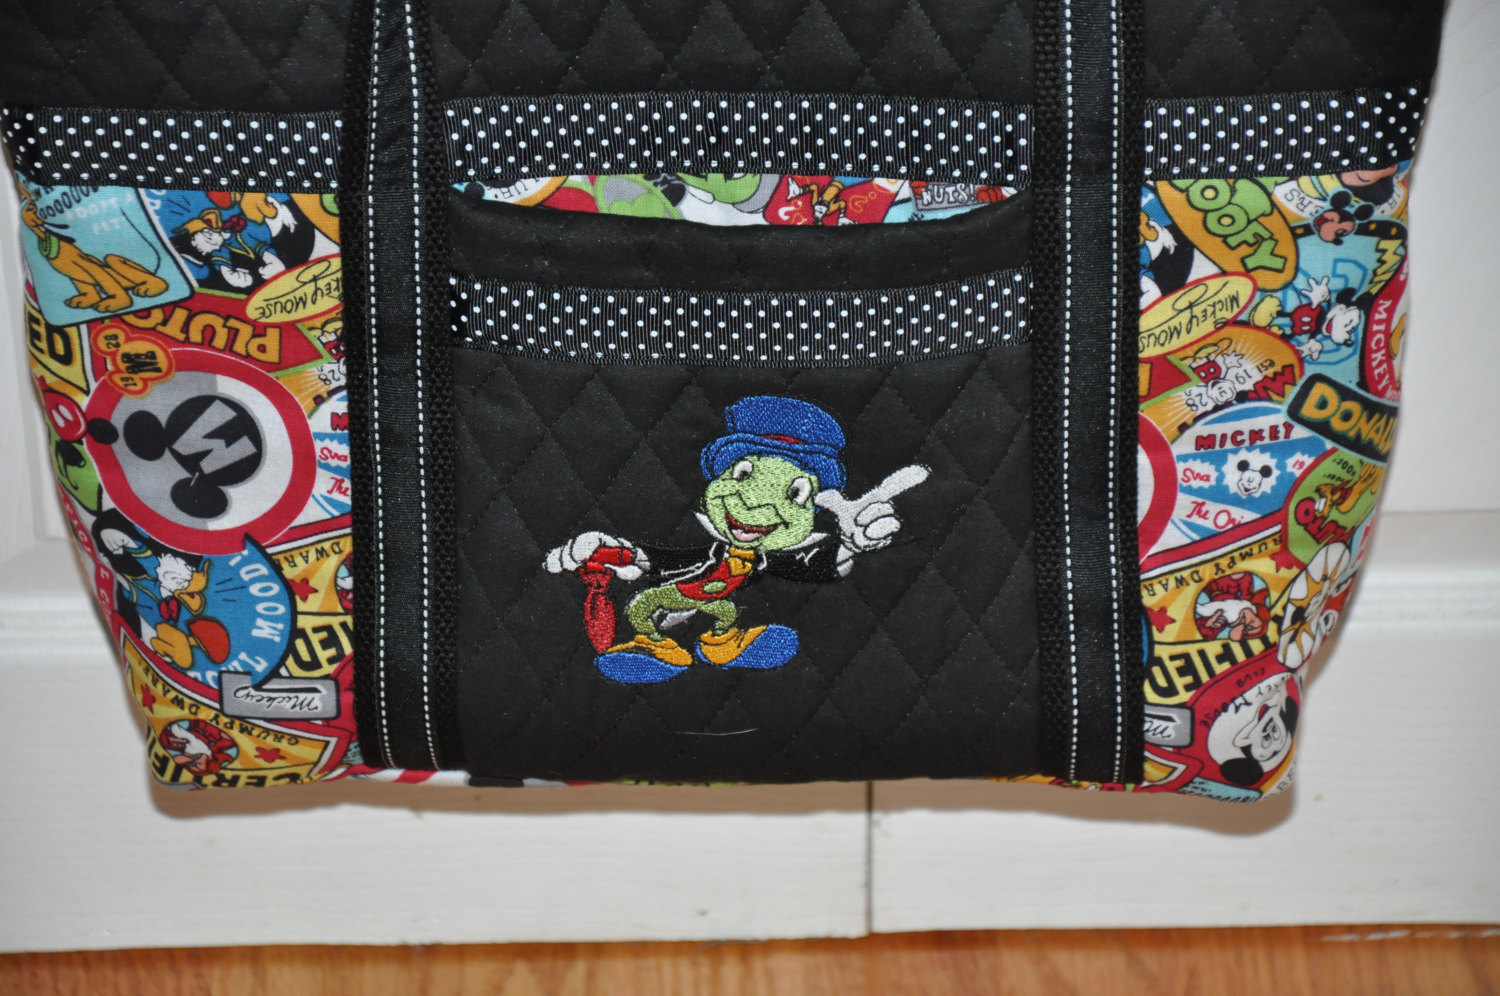 Jiminy Cricket design on bag embroidered